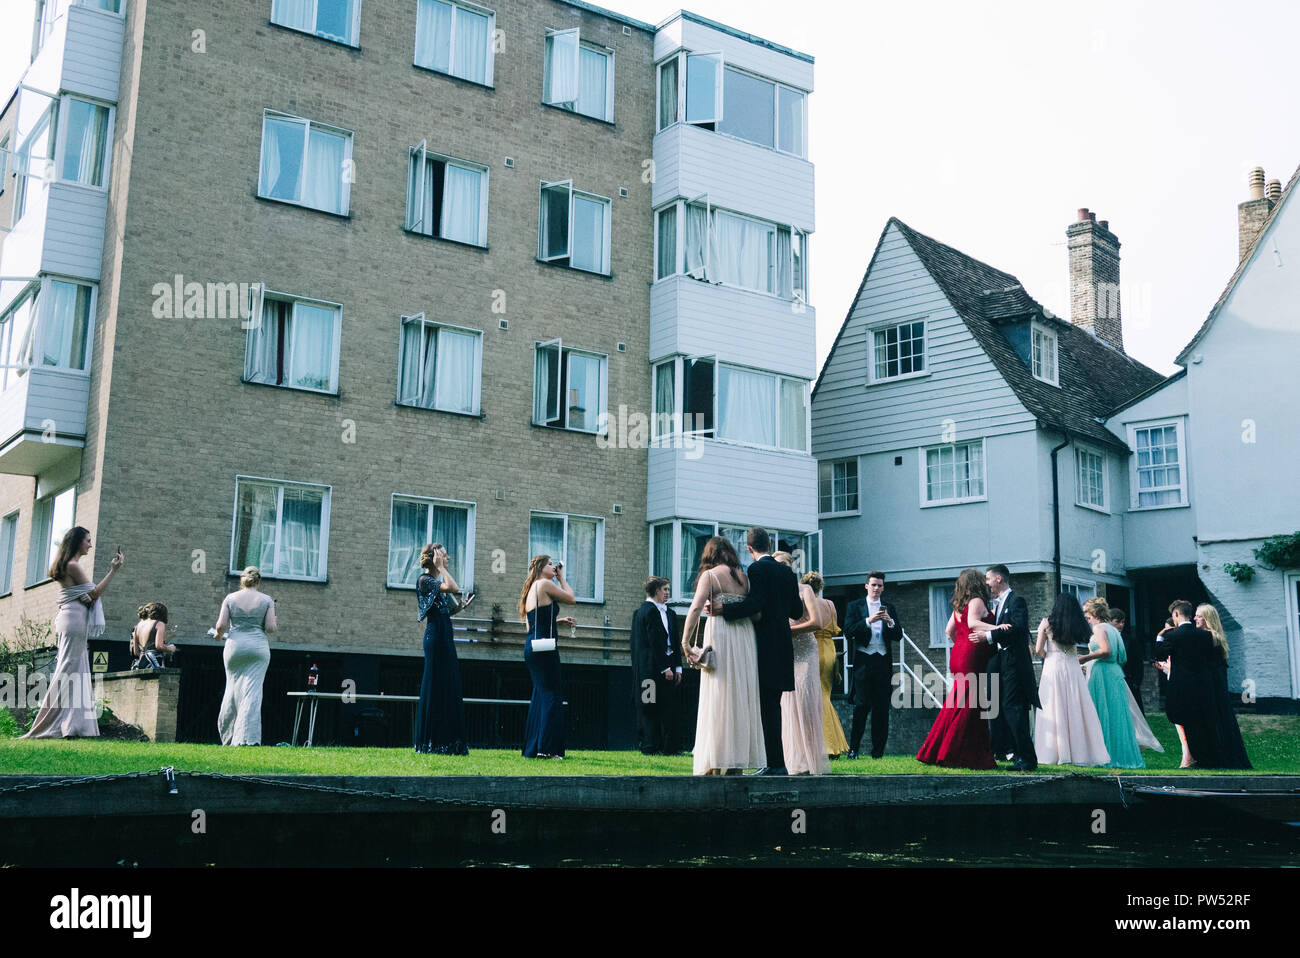 Cambridge students having a graduation party on the grass near the punting river taking group photos - Stock Image